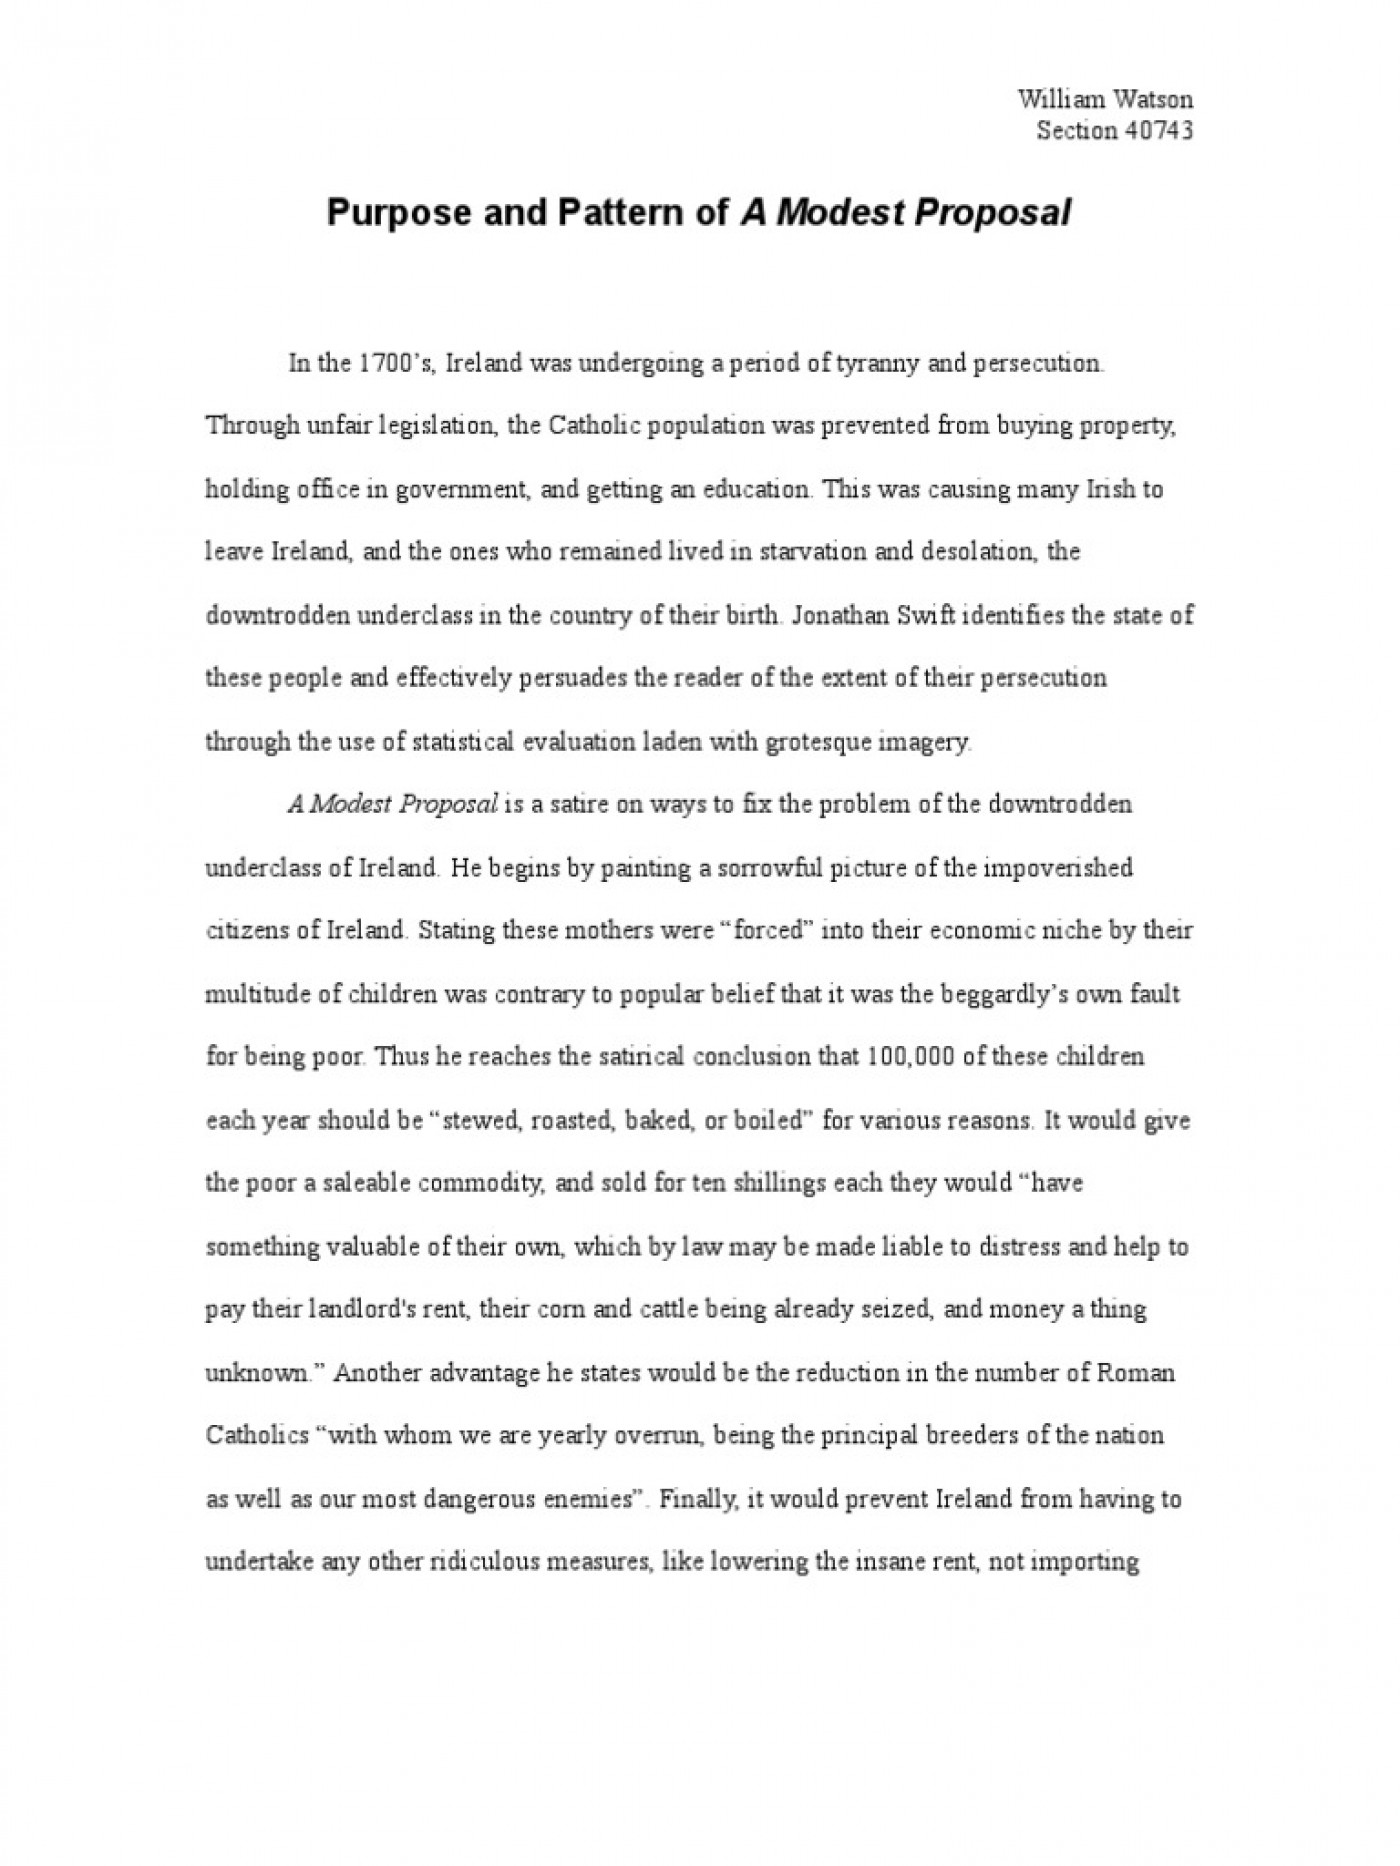 029 Satirical Essay Topics Example Worksheet Modest Proposal Answers Grass Frightening Satire On Obesity For College 111 1400